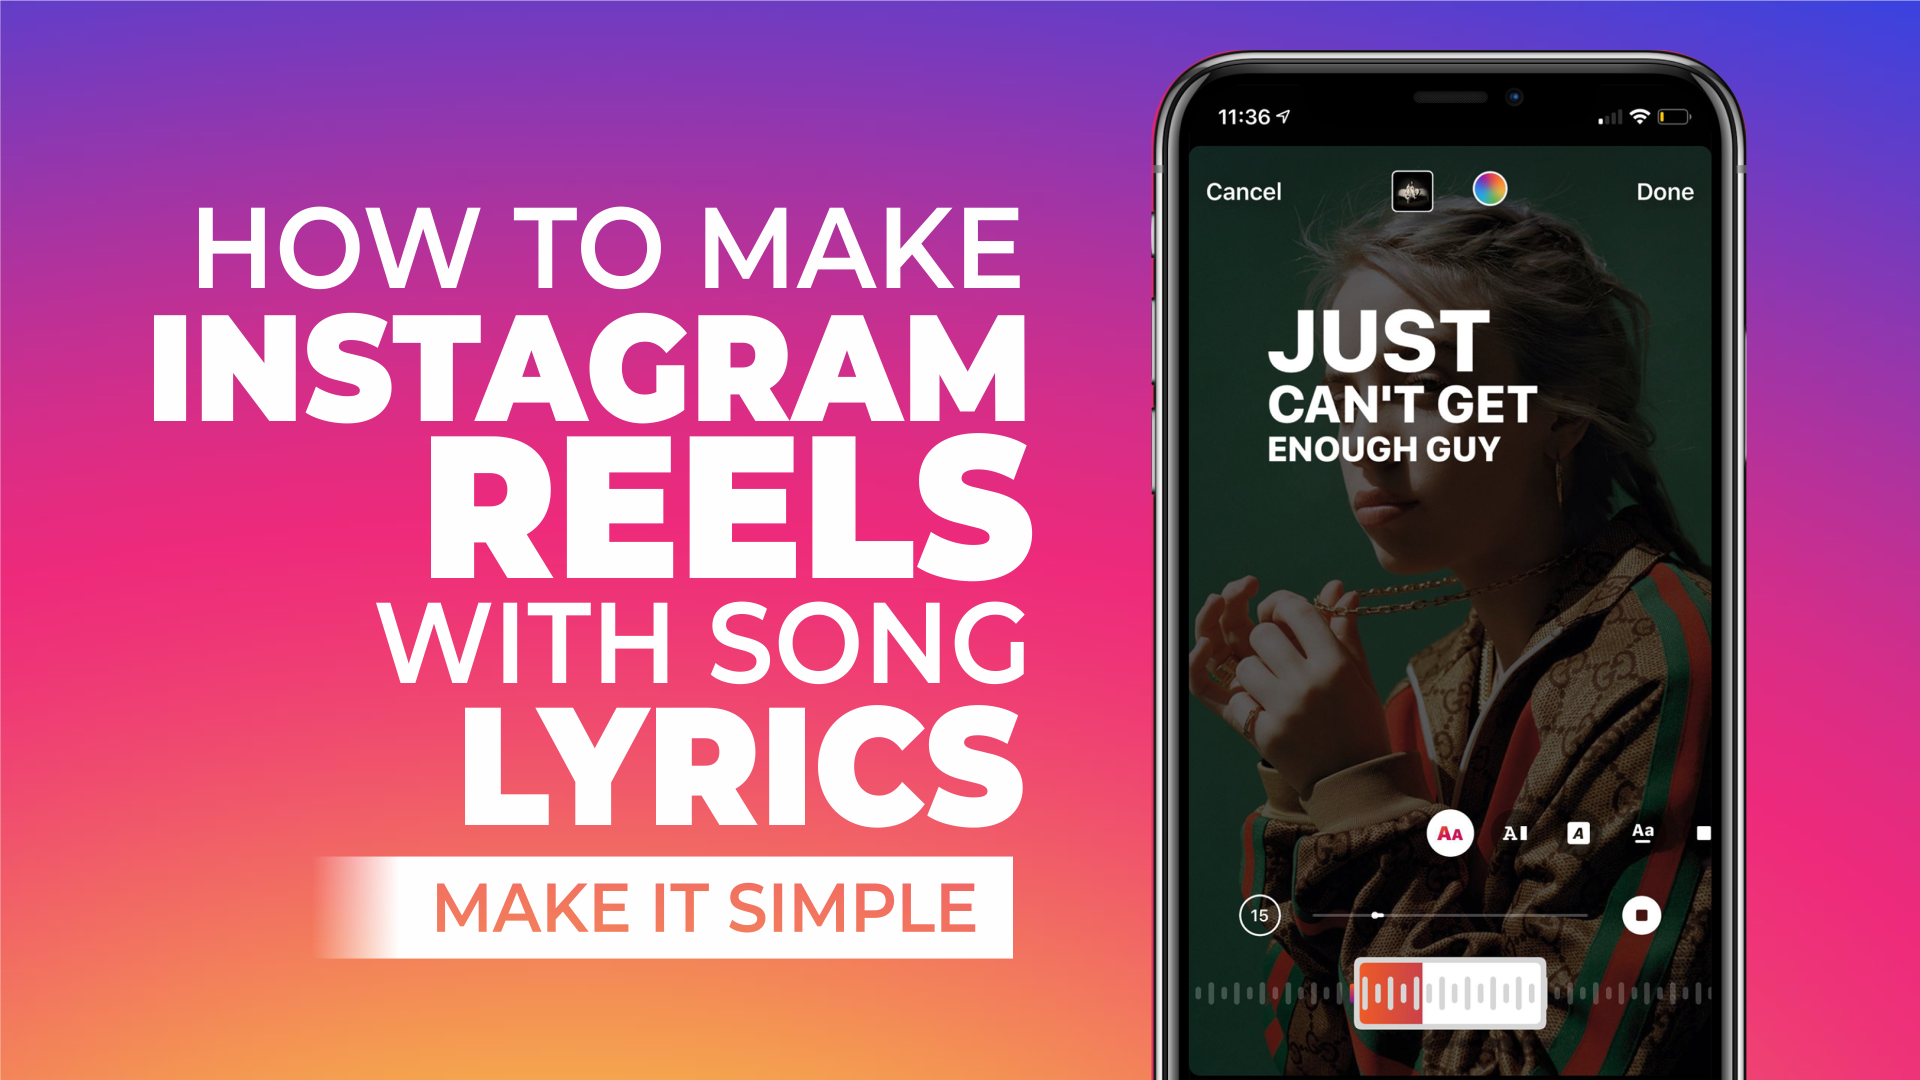 how to make reels with lyrics on instagram